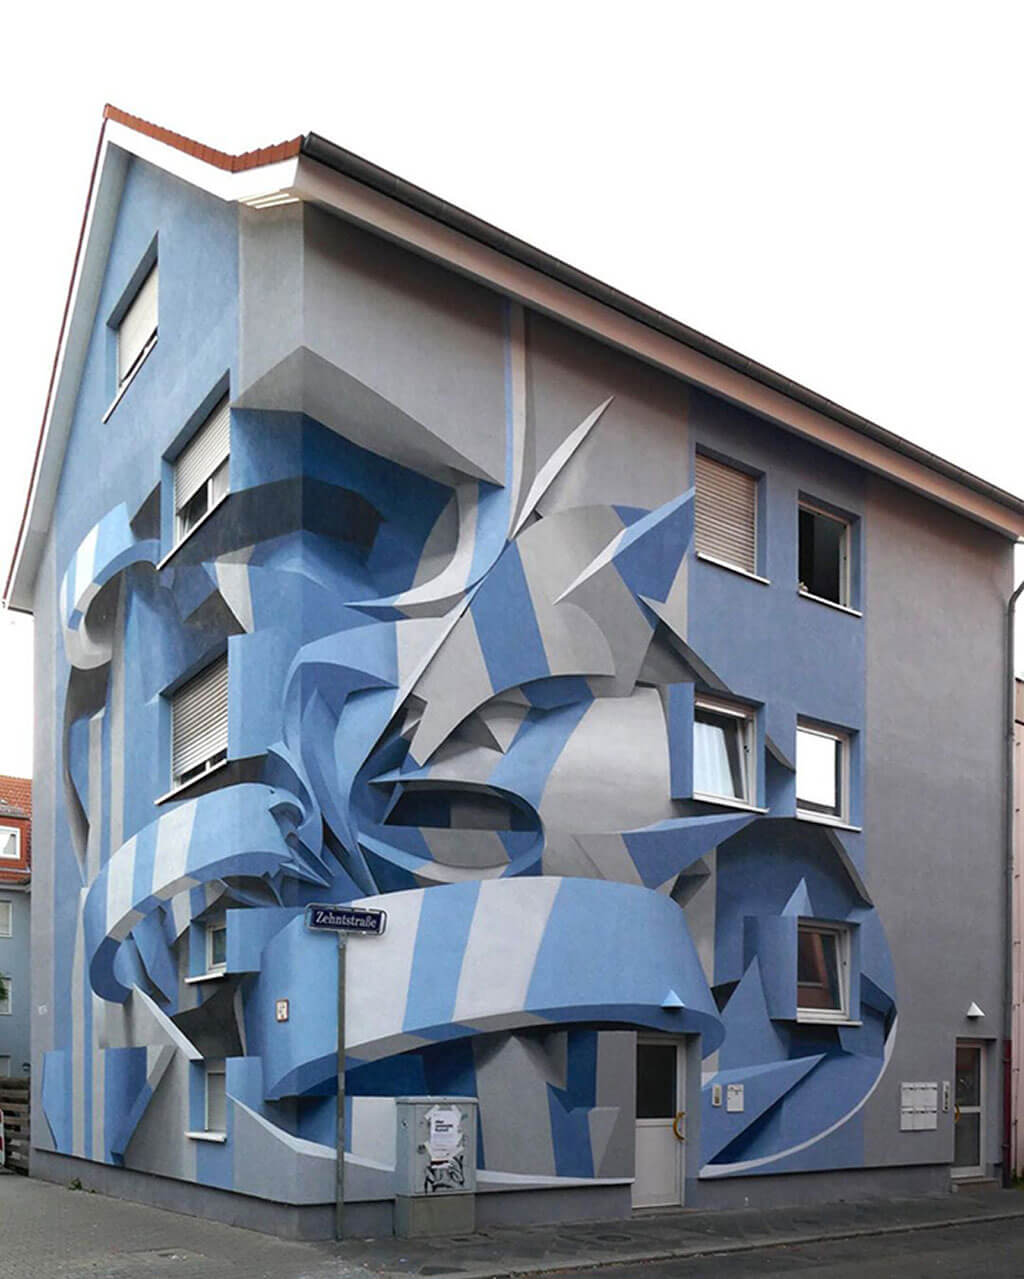 Optical illusion building on a street corner in Manheim, Germany